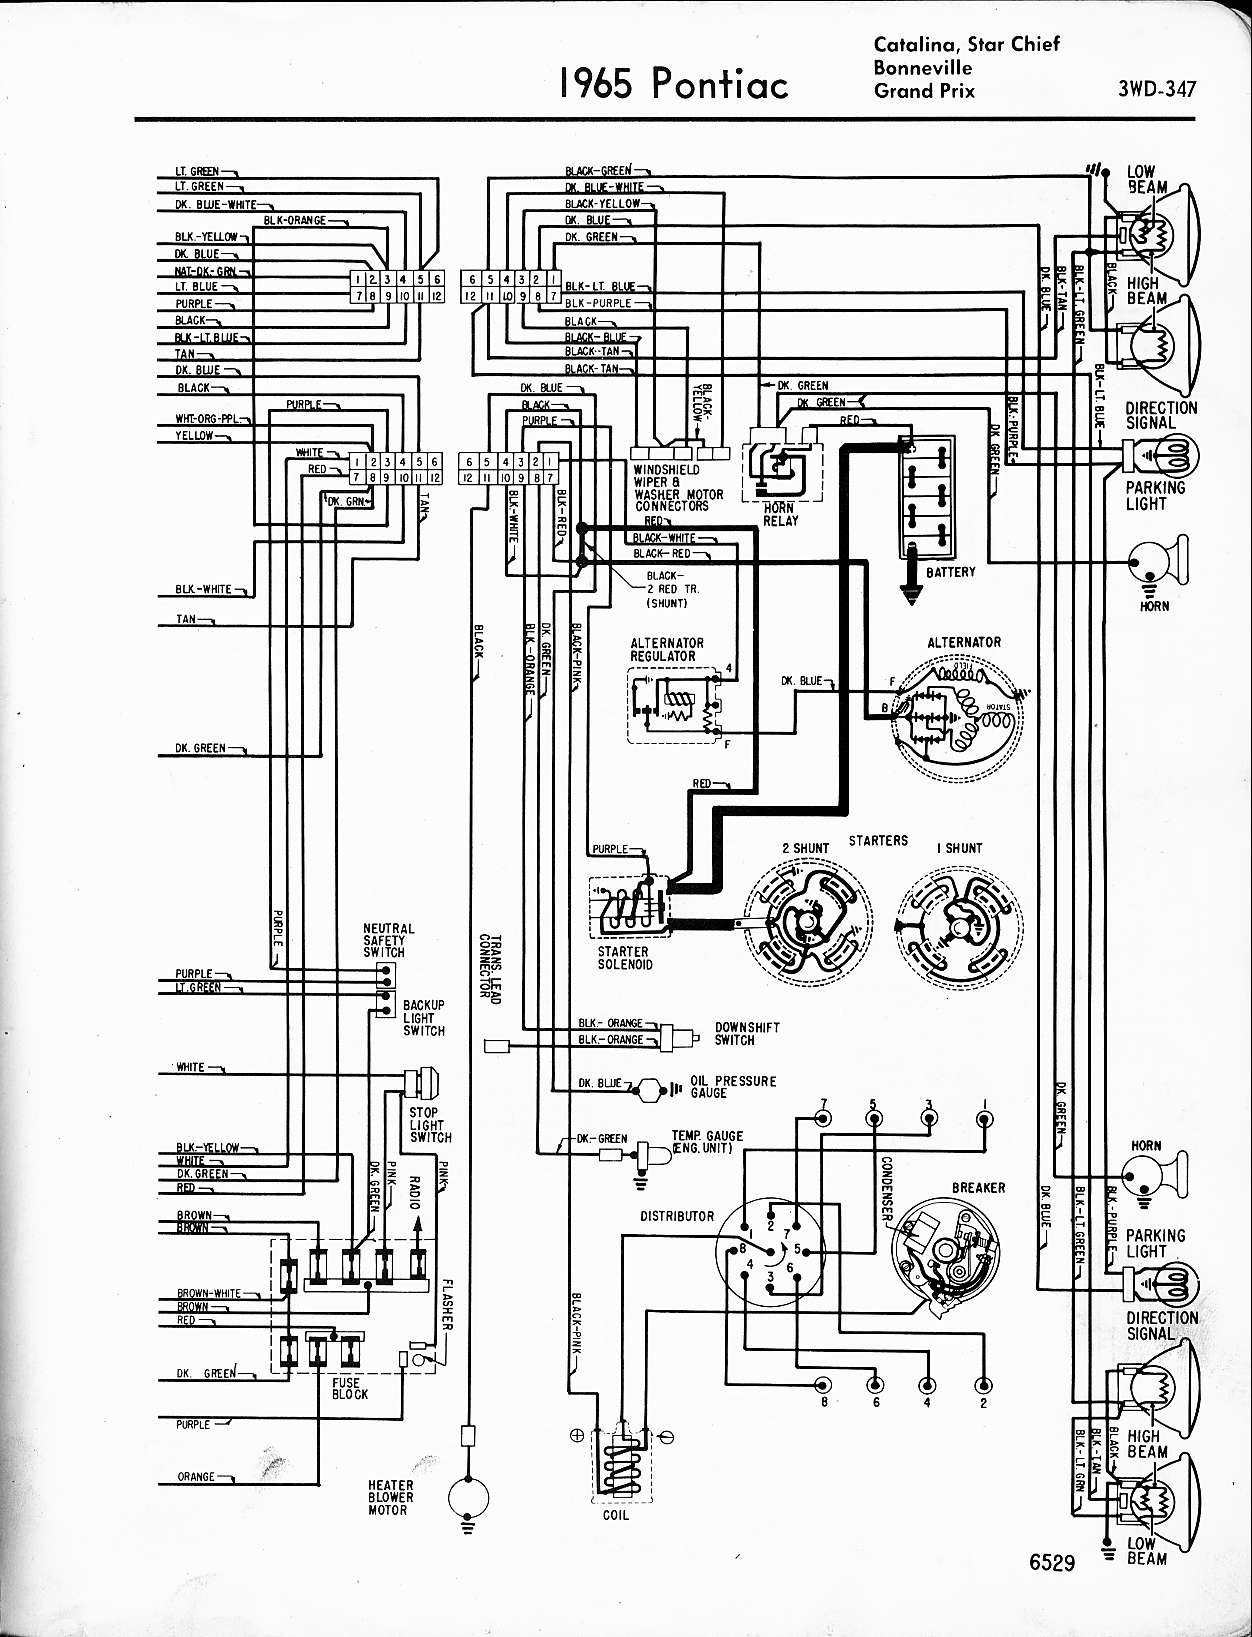 Terrific Pontiac Vacuum Diagram Wiring Library Wiring Cloud Funidienstapotheekhoekschewaardnl